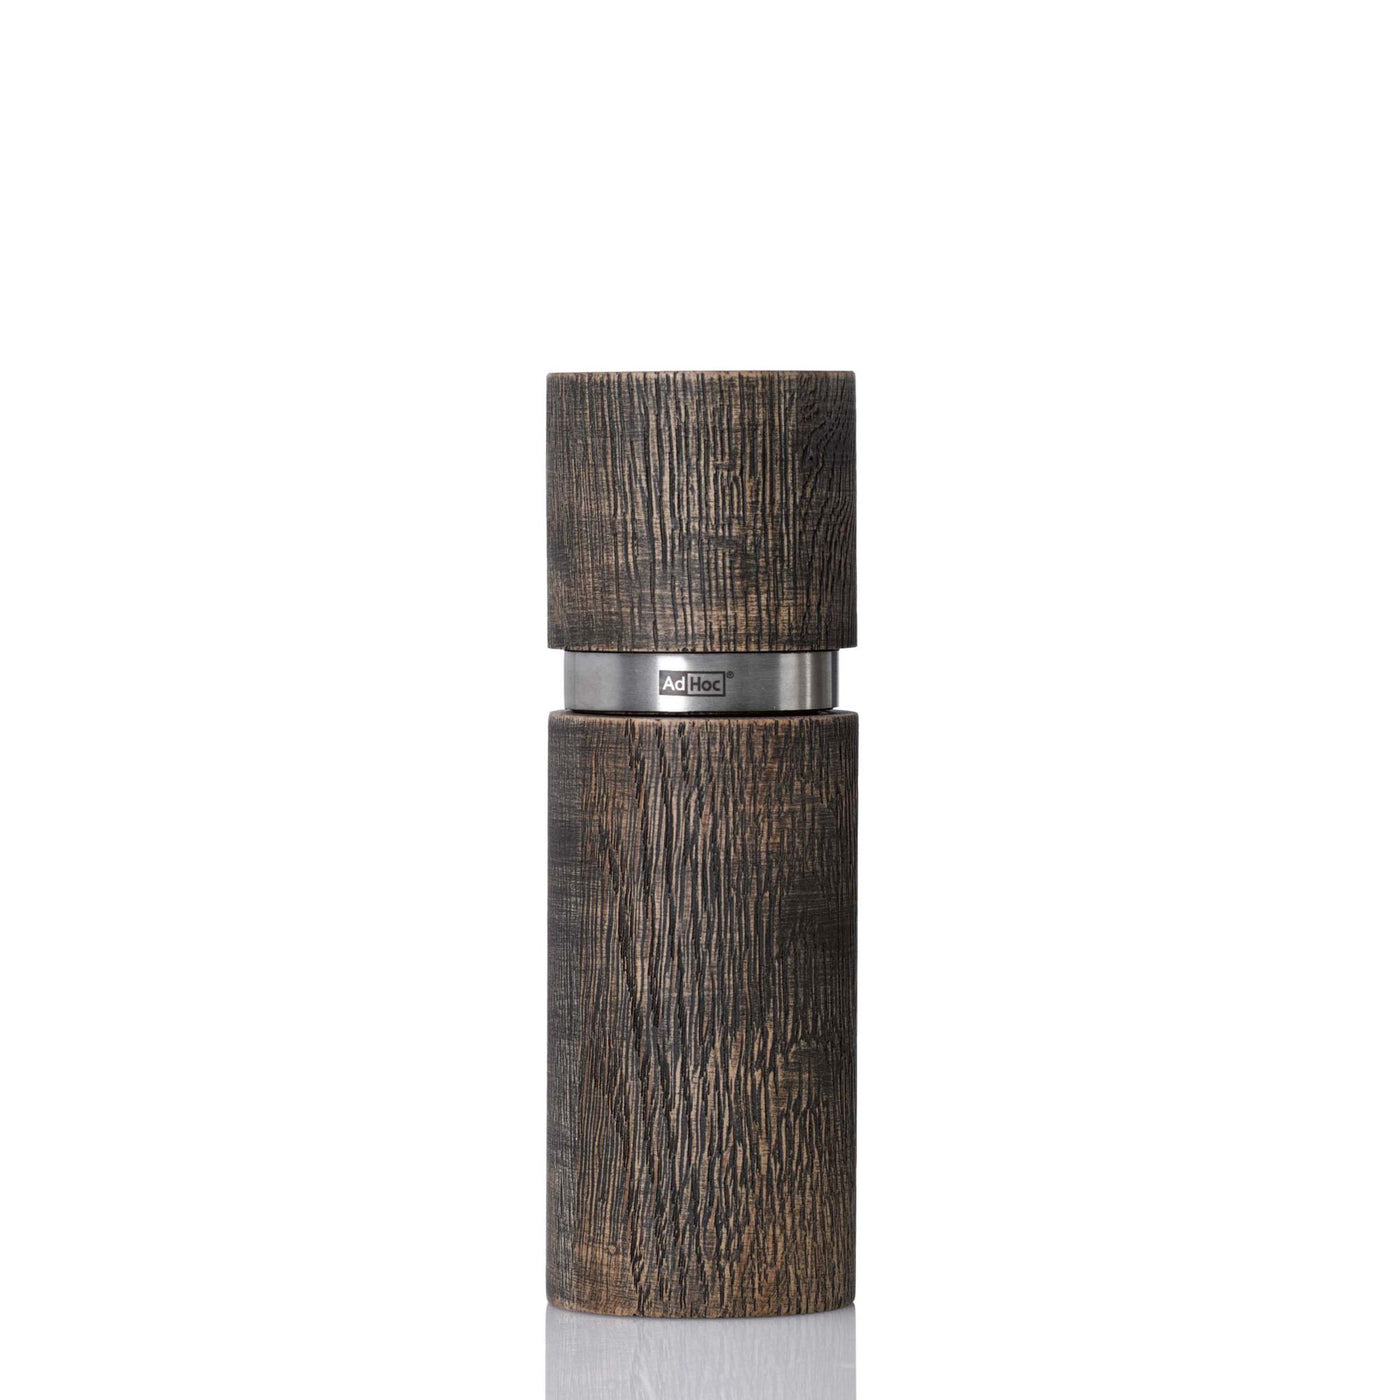 Small Pepper or Salt Mill in Black